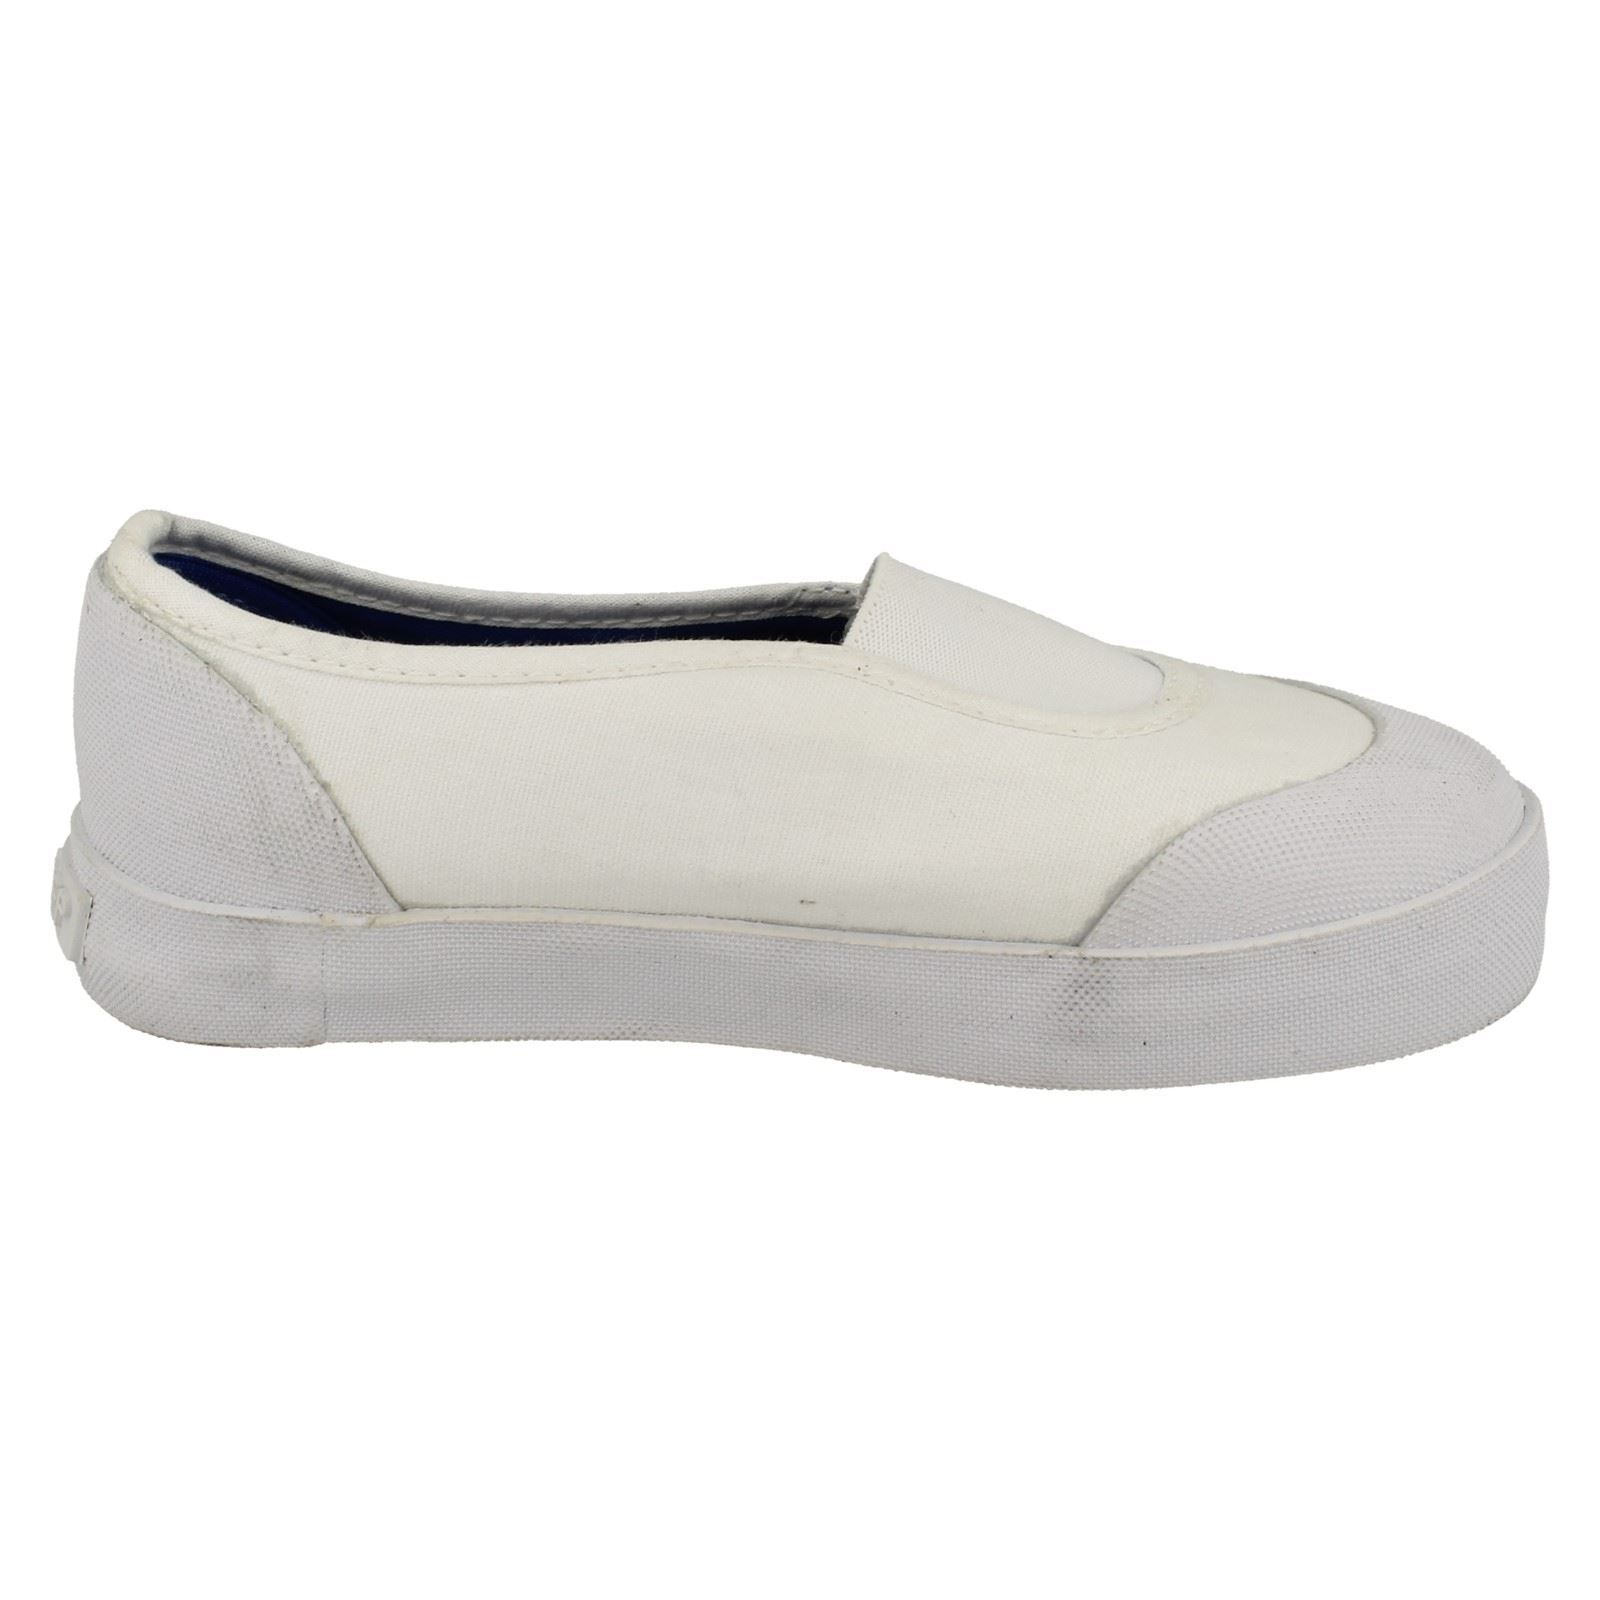 Unisexe Spot on Lacet Toile Chaussures